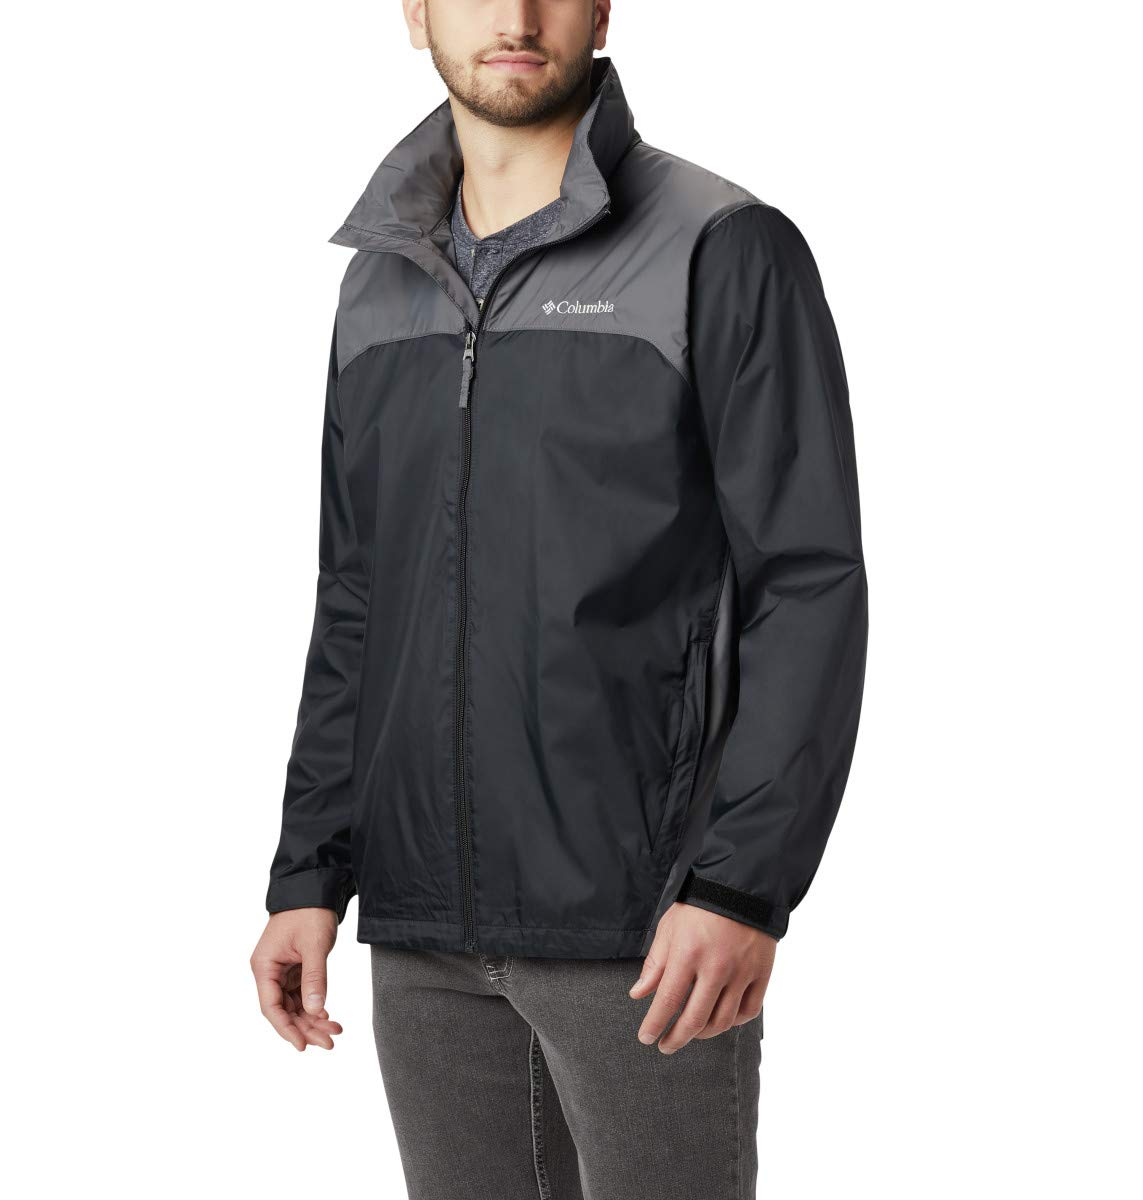 Columbia Men's Glennaker Lake Packable Rain Jacket, Black/Grill, Large by Columbia